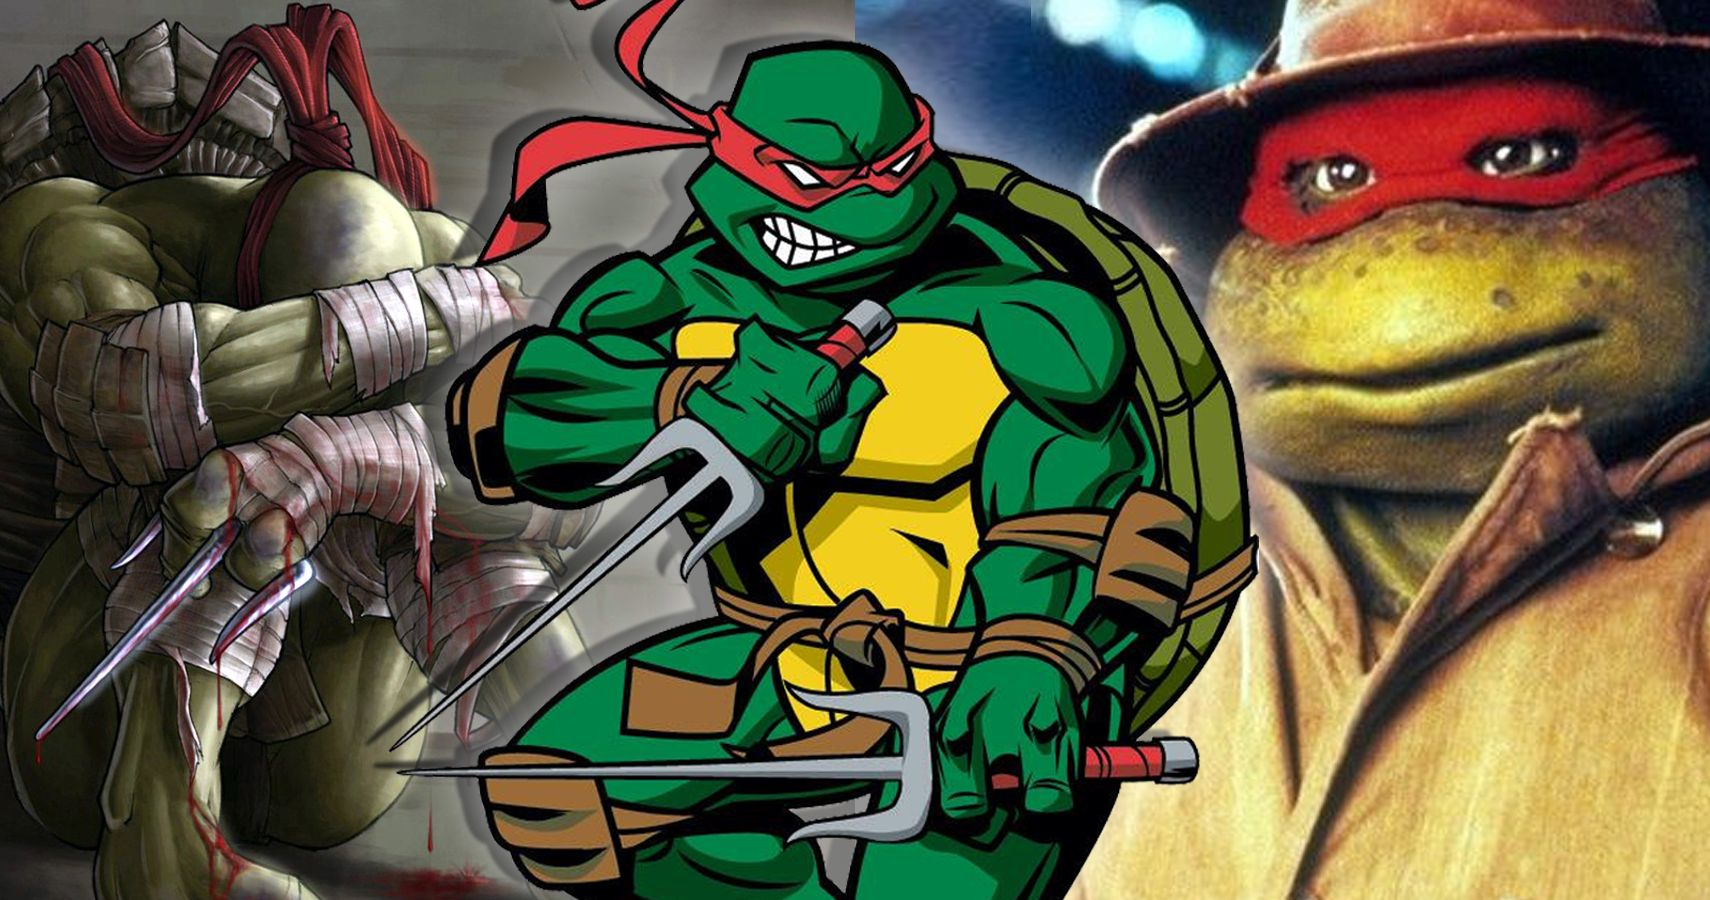 Cowabunga! Crazy Things You Never Knew About Raphael From